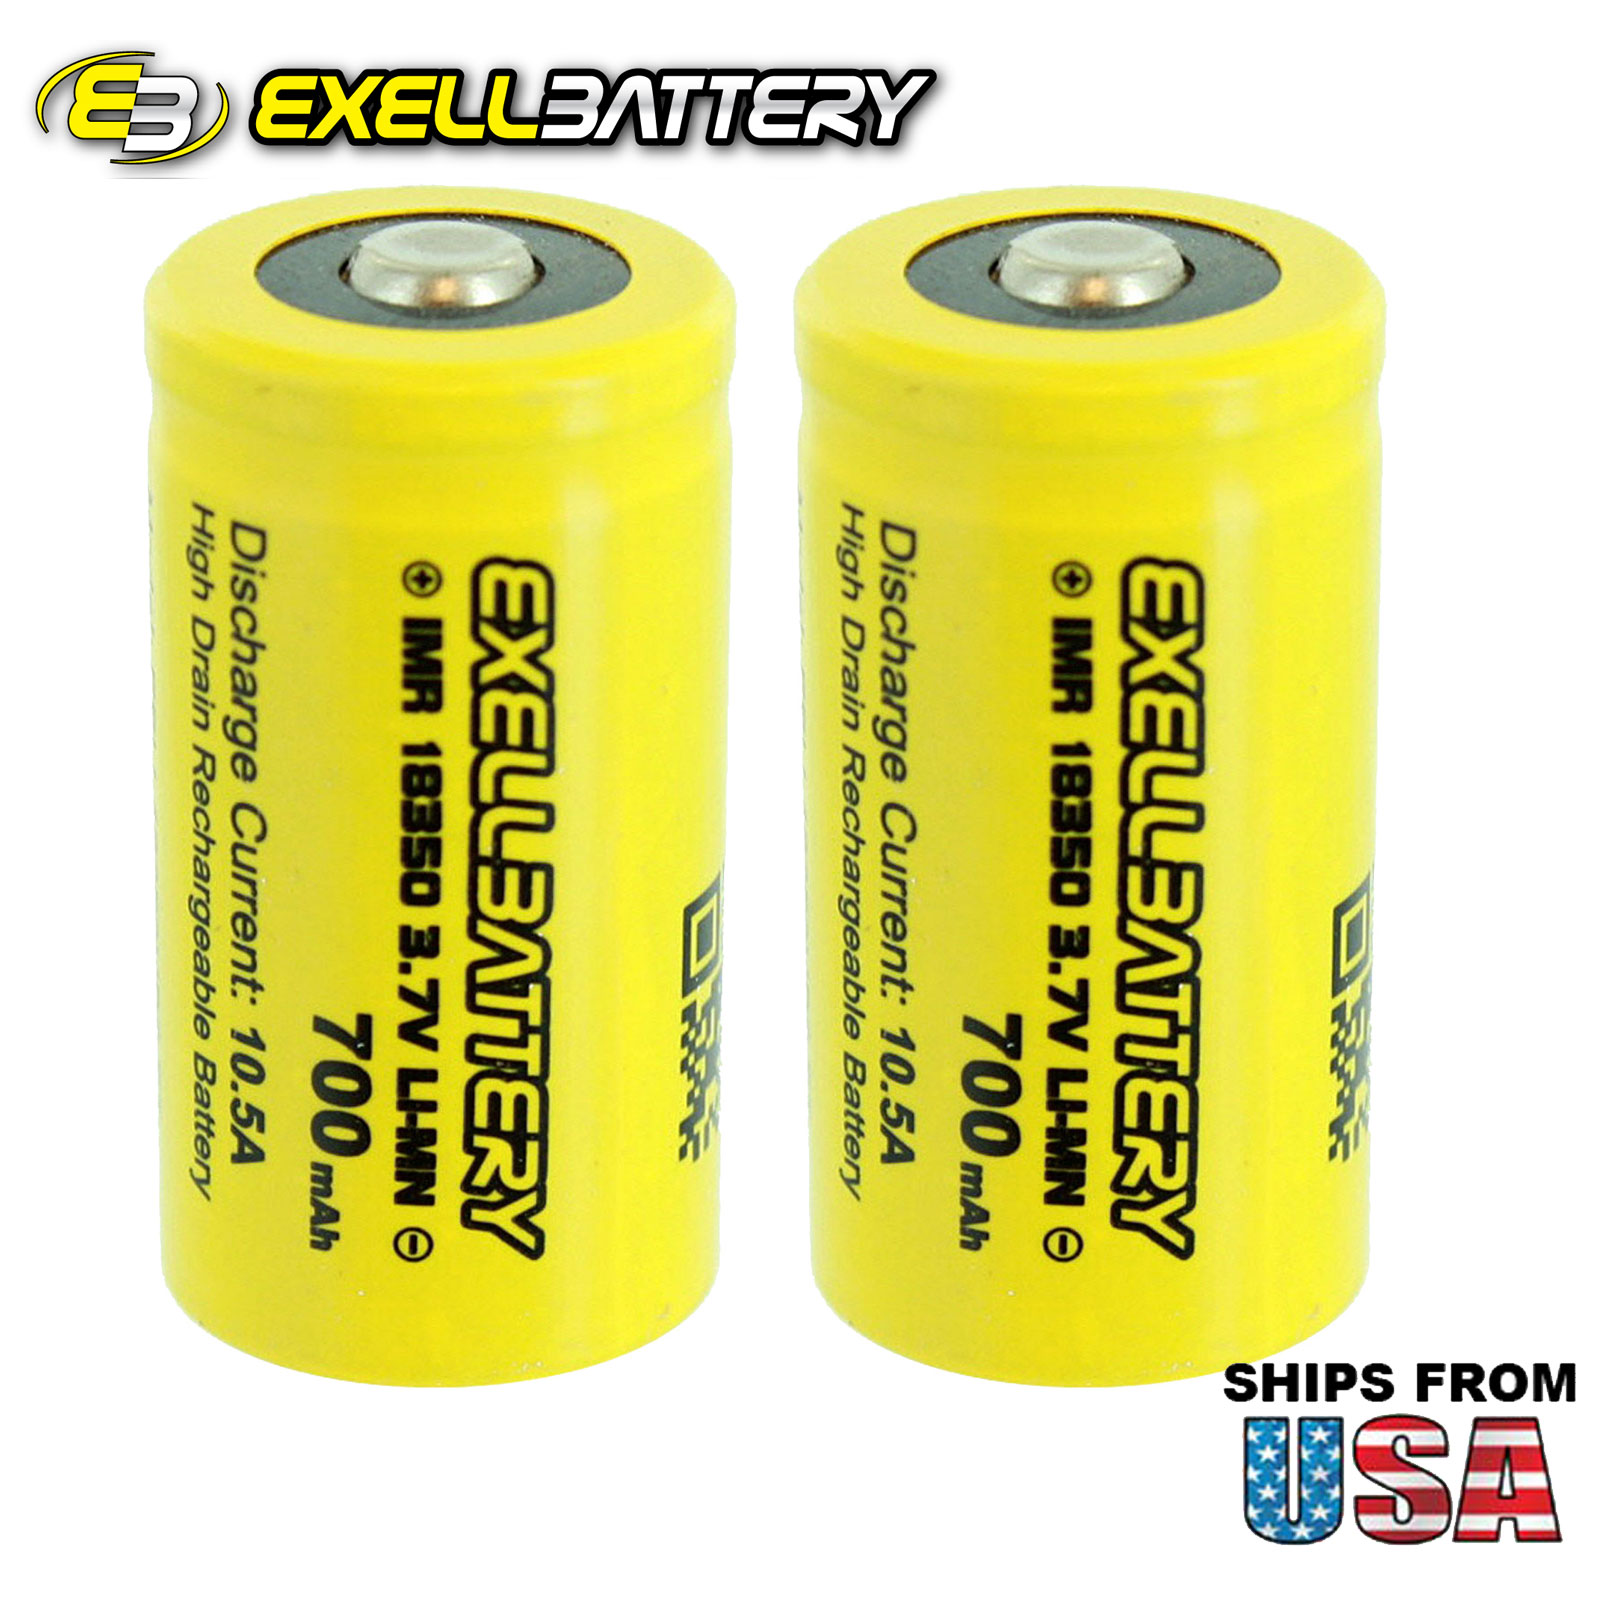 2pc IMR 18350 LiMN 700mAh 10.5AMP Rechargeable Button Top Battery USA SHIPPING